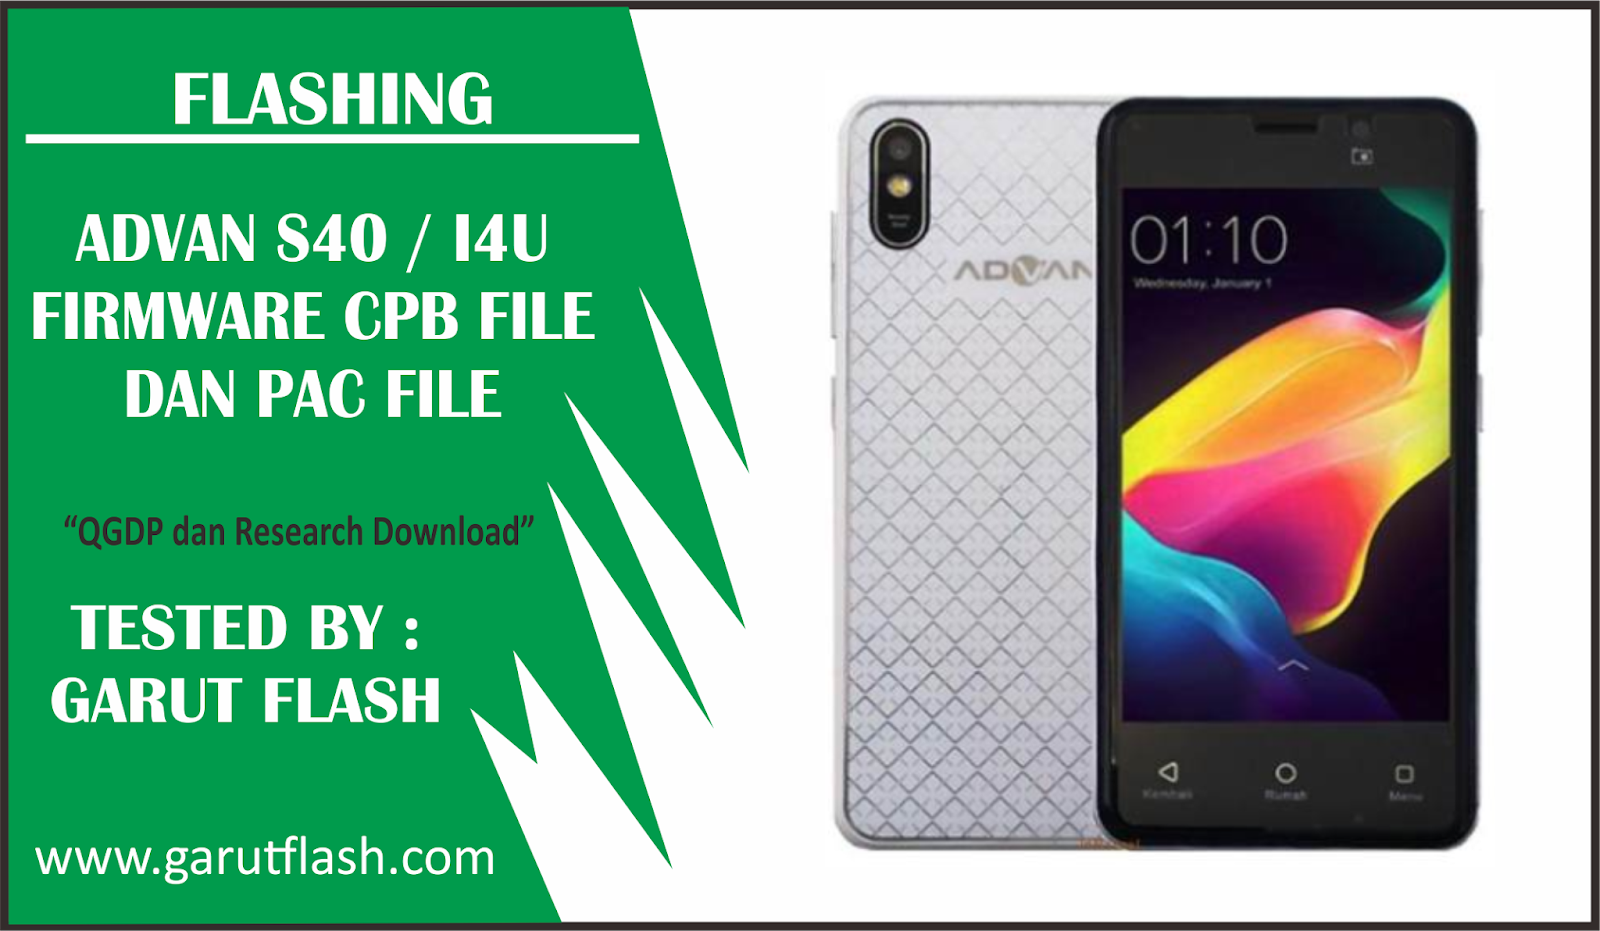 Flashing Advan S40 LTE (i4U) CPB & PAC File Tested - Garut Flash